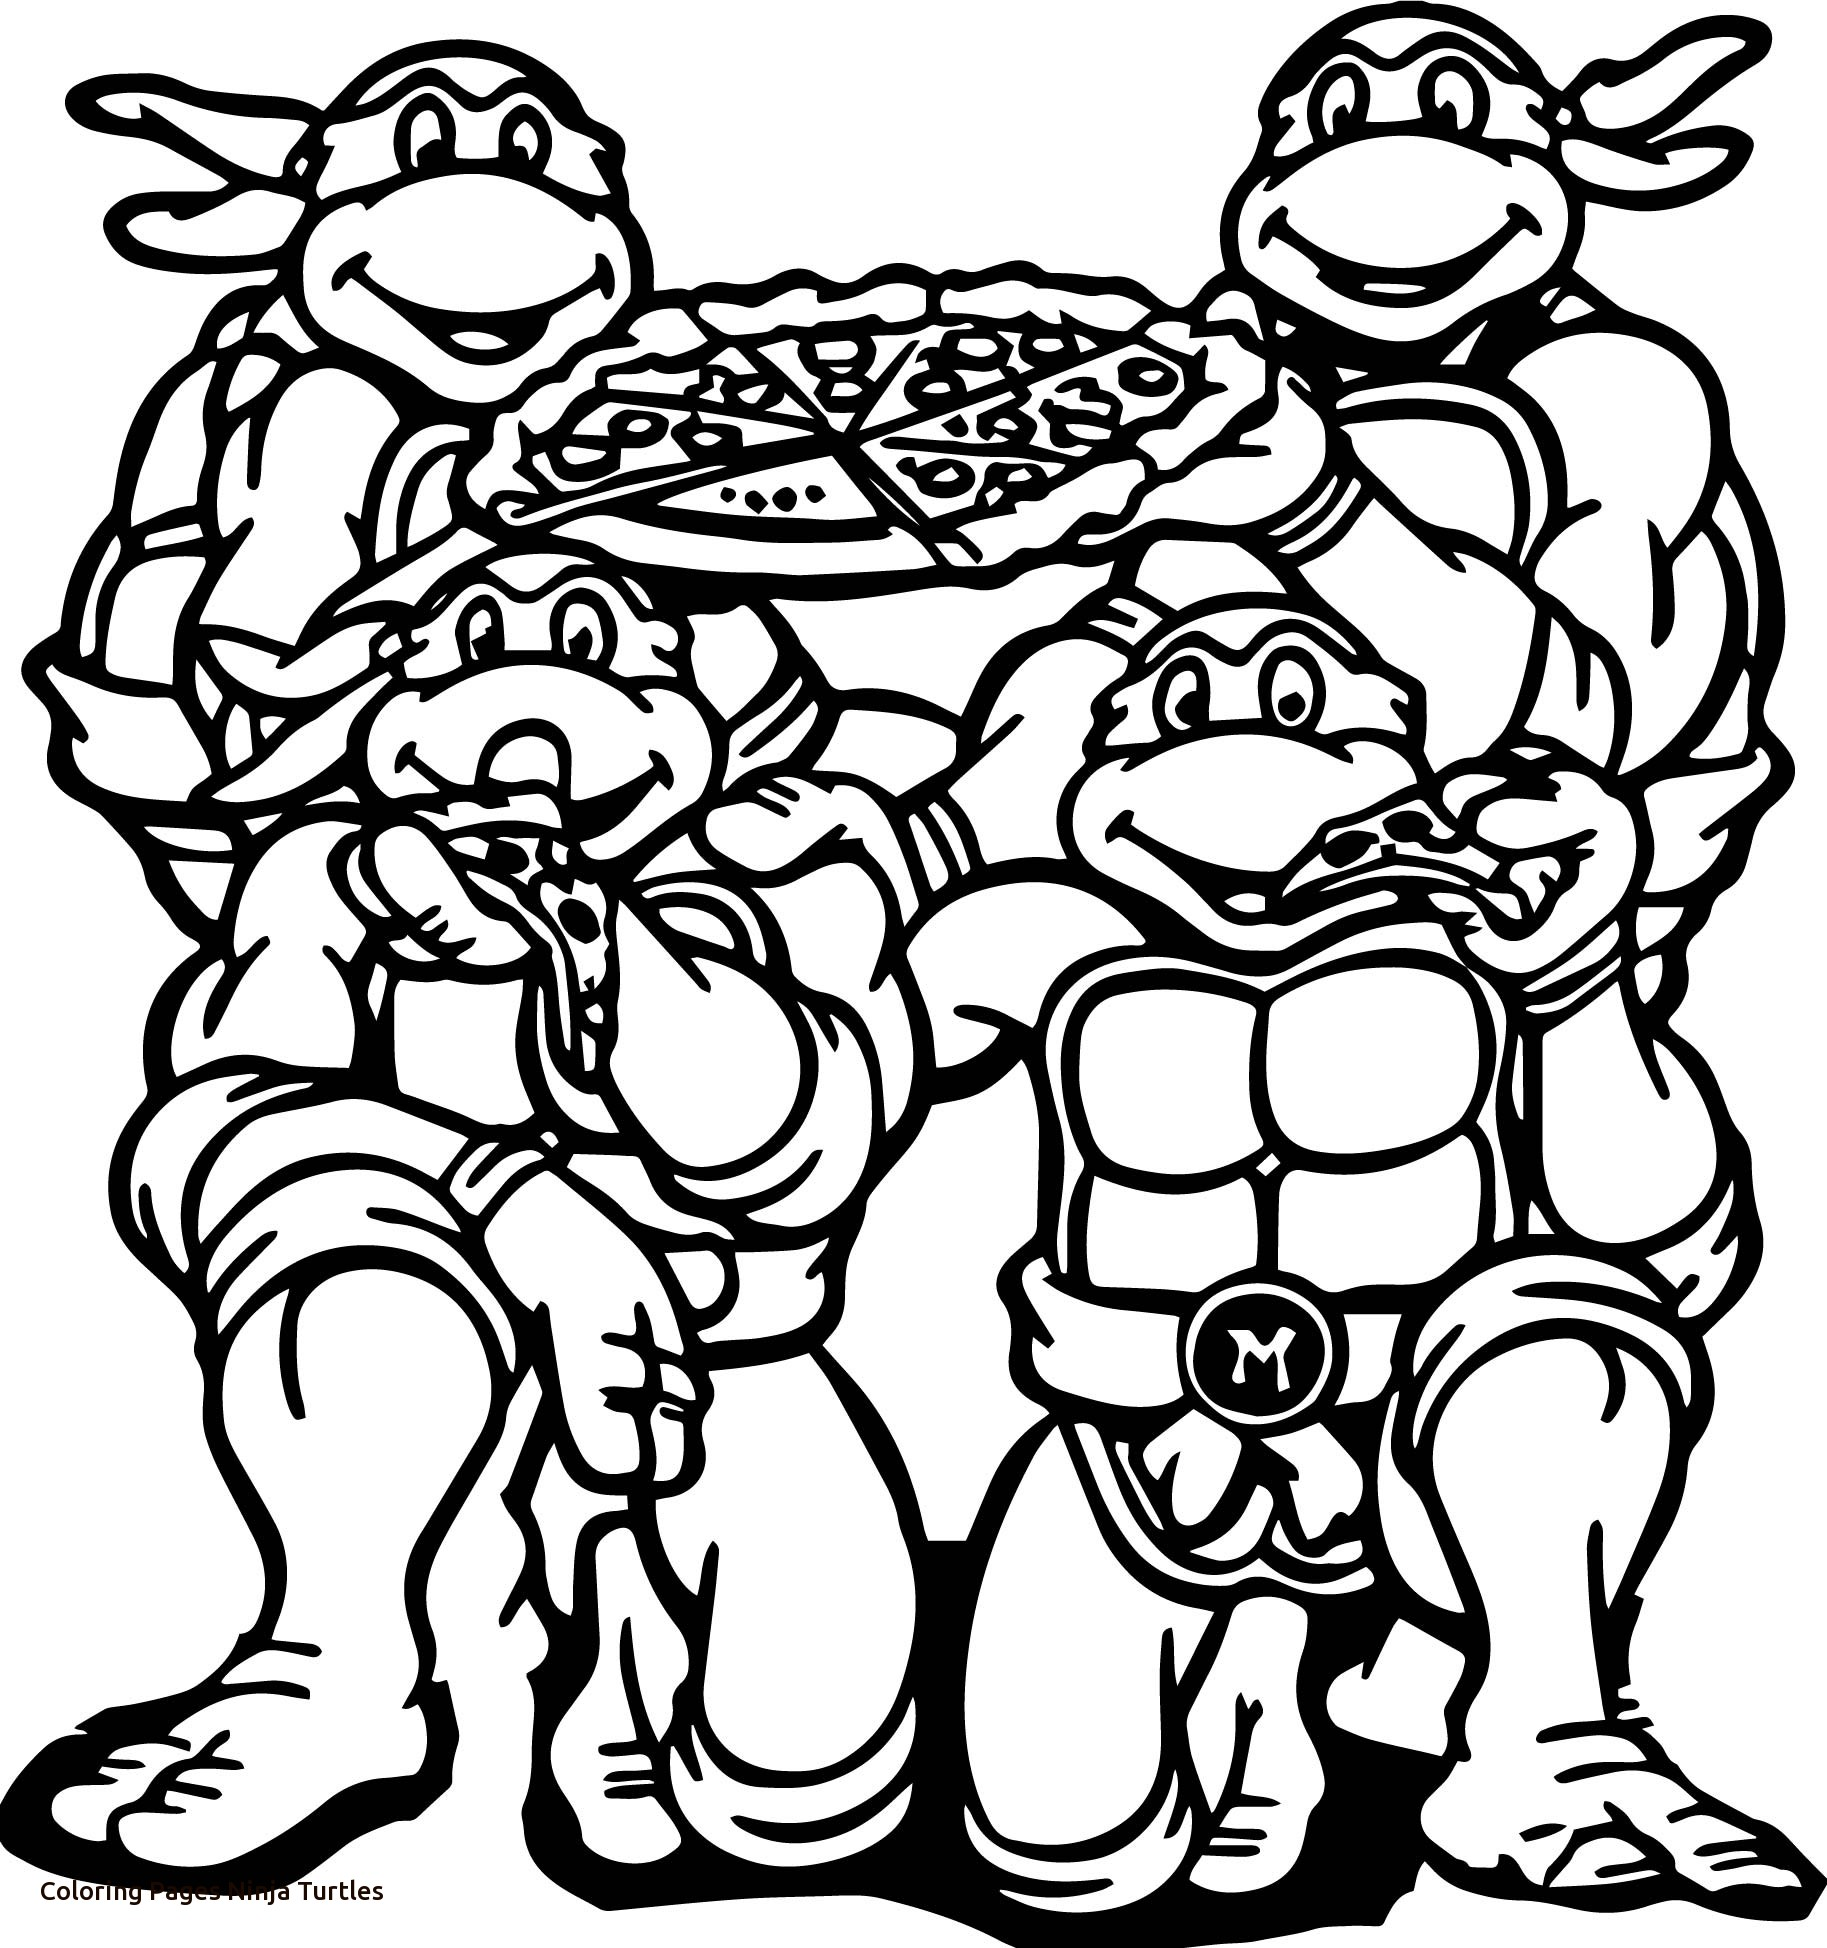 1827x1948 Coloring Pages Ninja Turtles Freecolorngpages.co